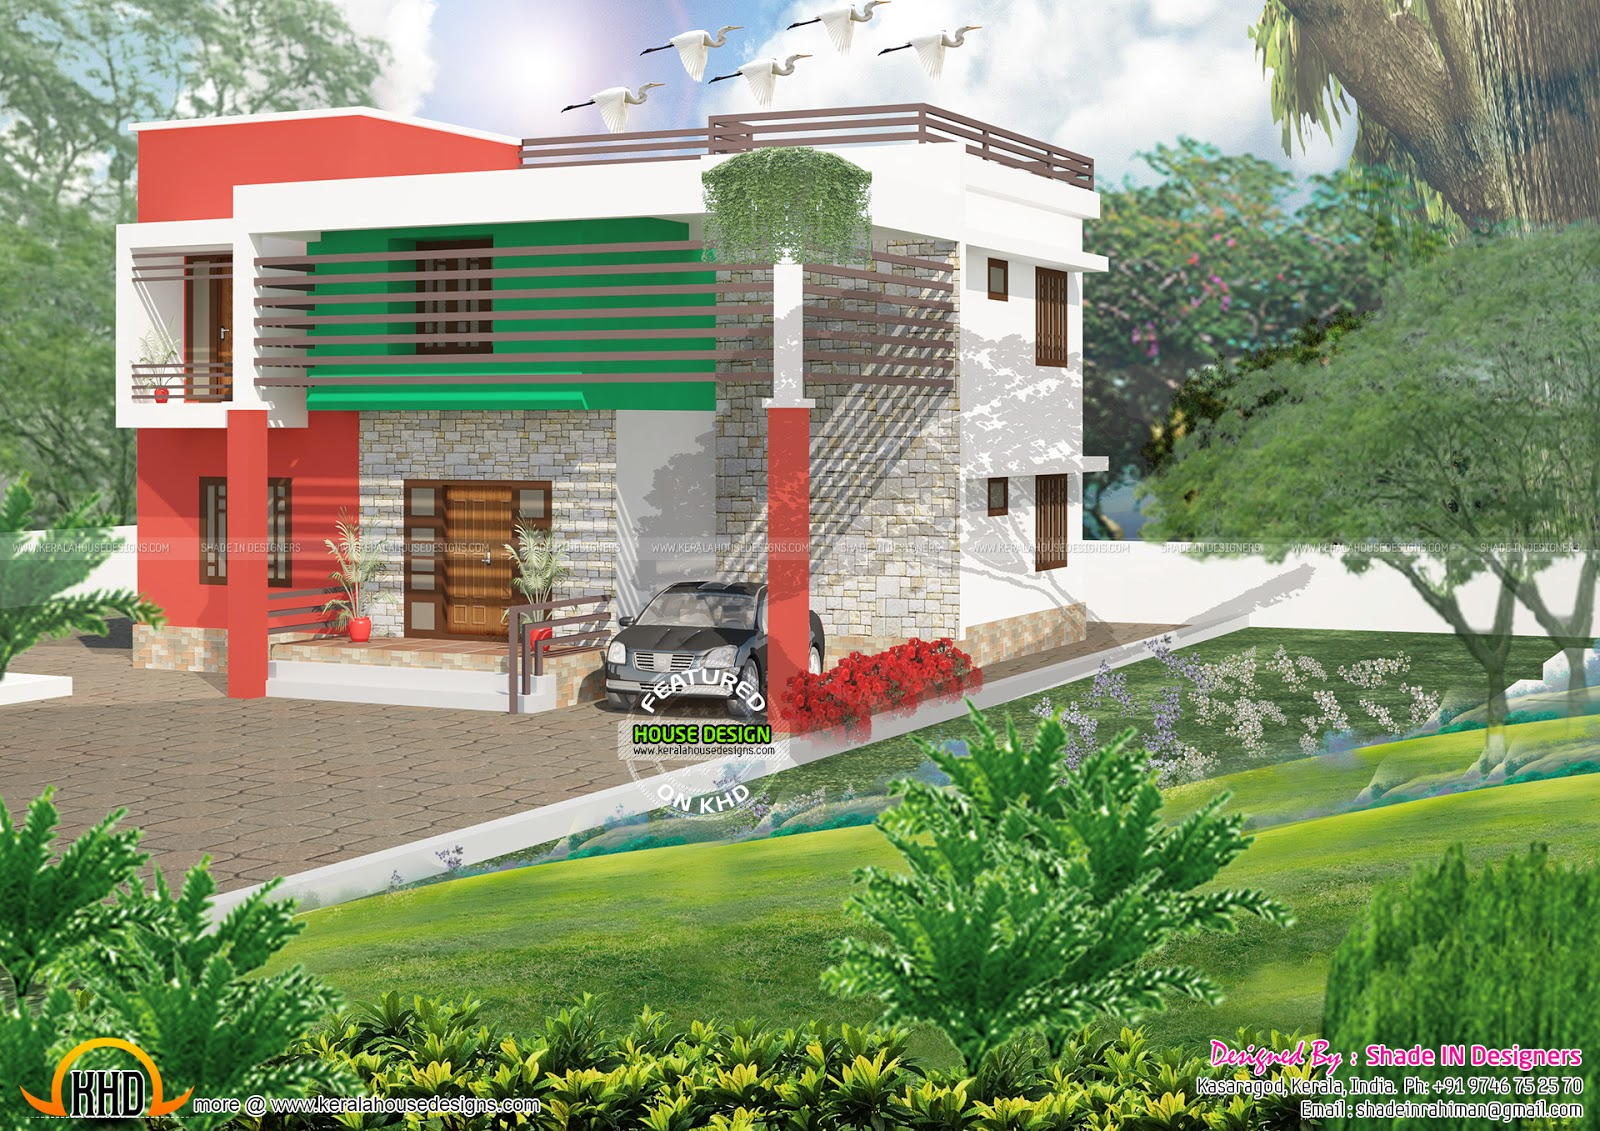 Portico 211 sq ft total area 2919 sq ft no of bedrooms 4 common toilet 2 design style flat roof